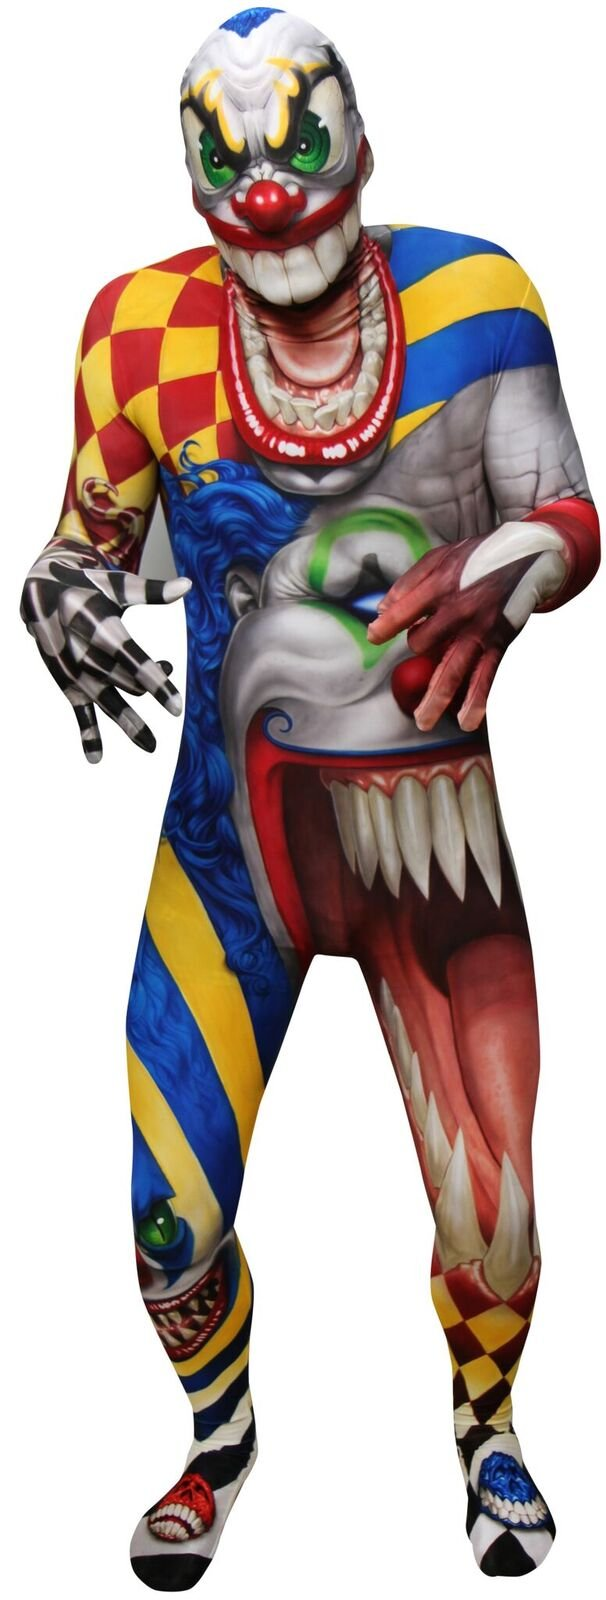 Clown Morphsuit Adults Scary Monster Costume Mens Carnival Fancy Dress Up Large